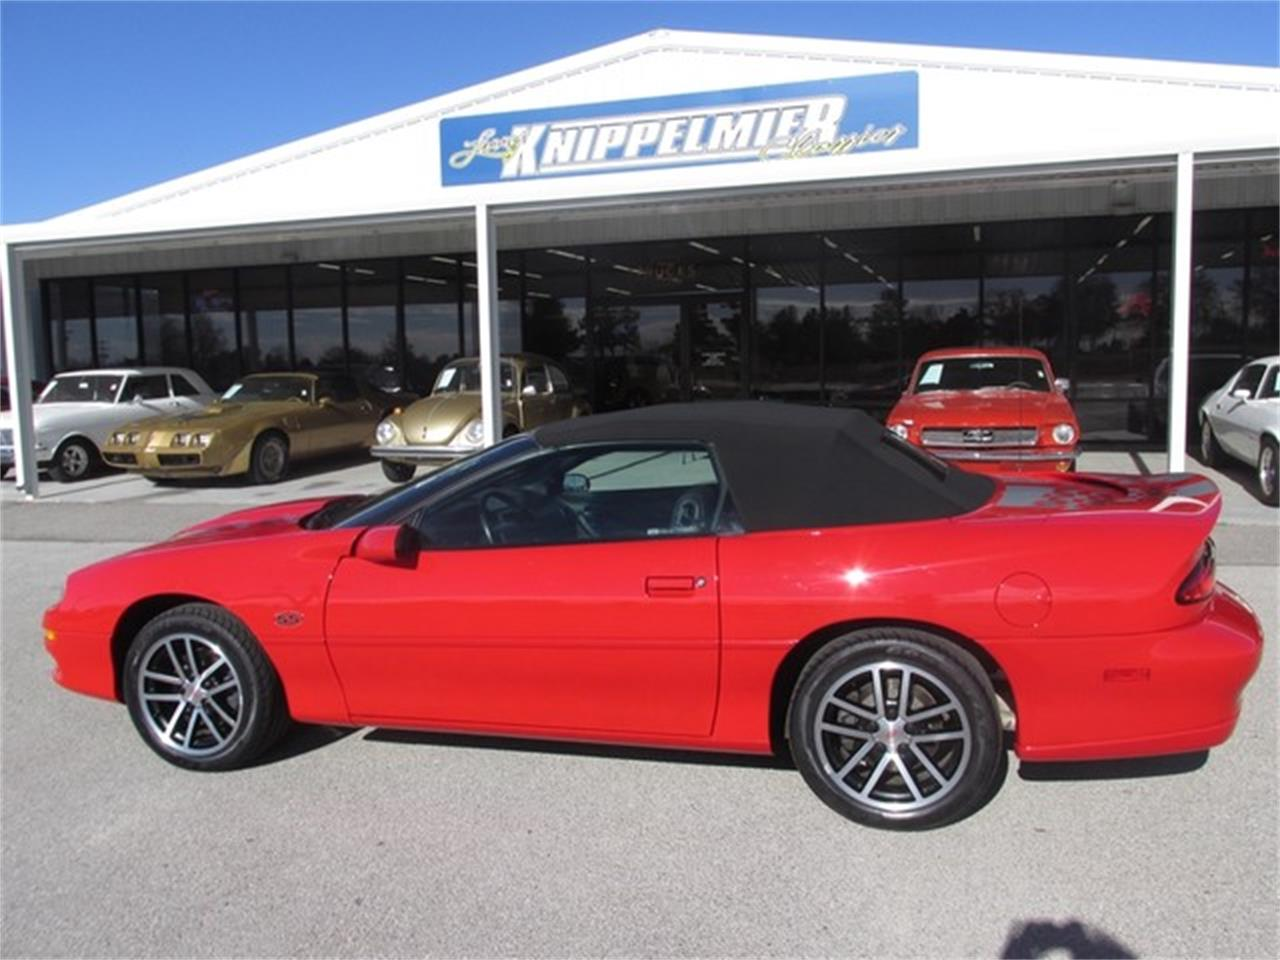 Large Picture of 2002 Chevrolet Camaro Offered by Knippelmier Classics - DA4T